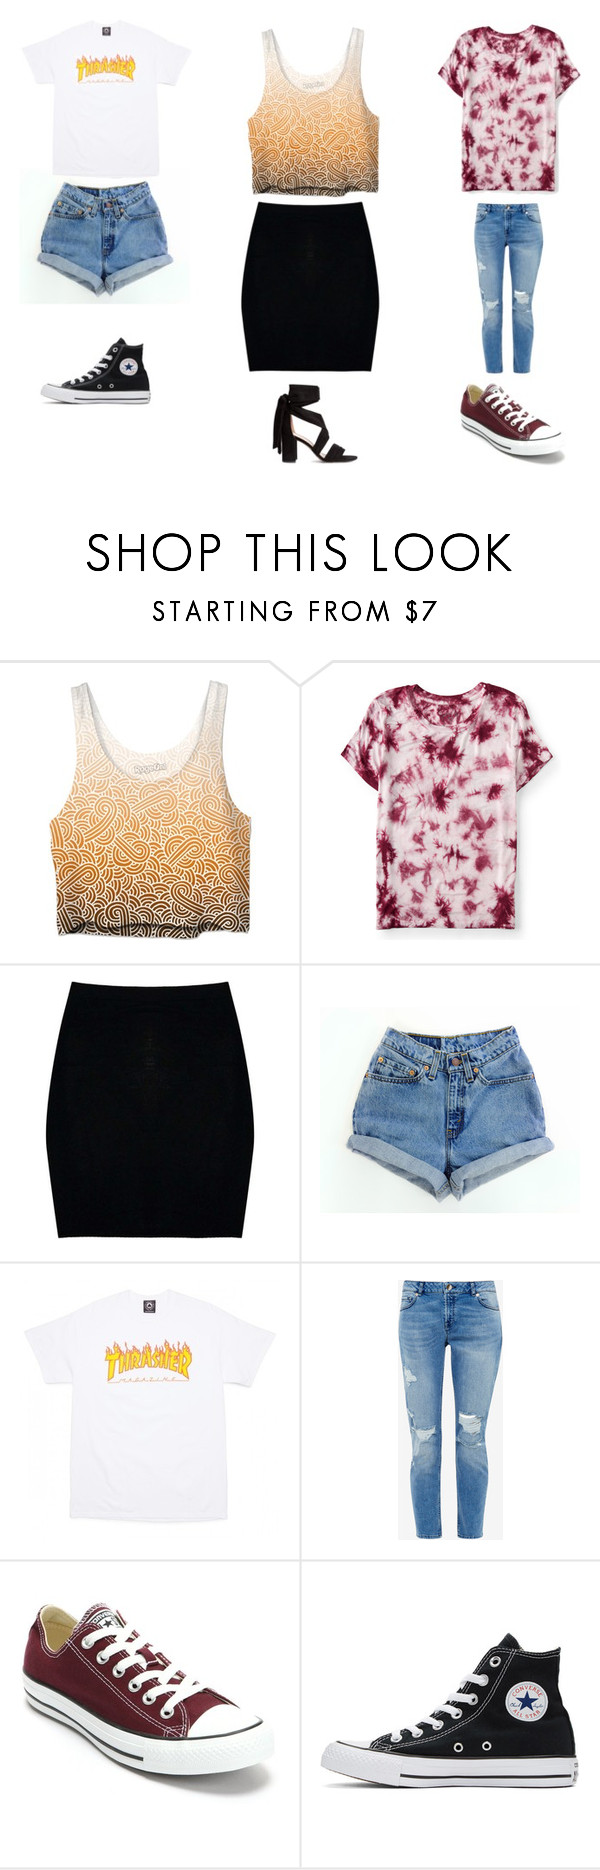 """UnTiTLeD #47"" by katie-lovebug on Polyvore featuring Aéropostale, Boohoo, Ted Baker and Converse"